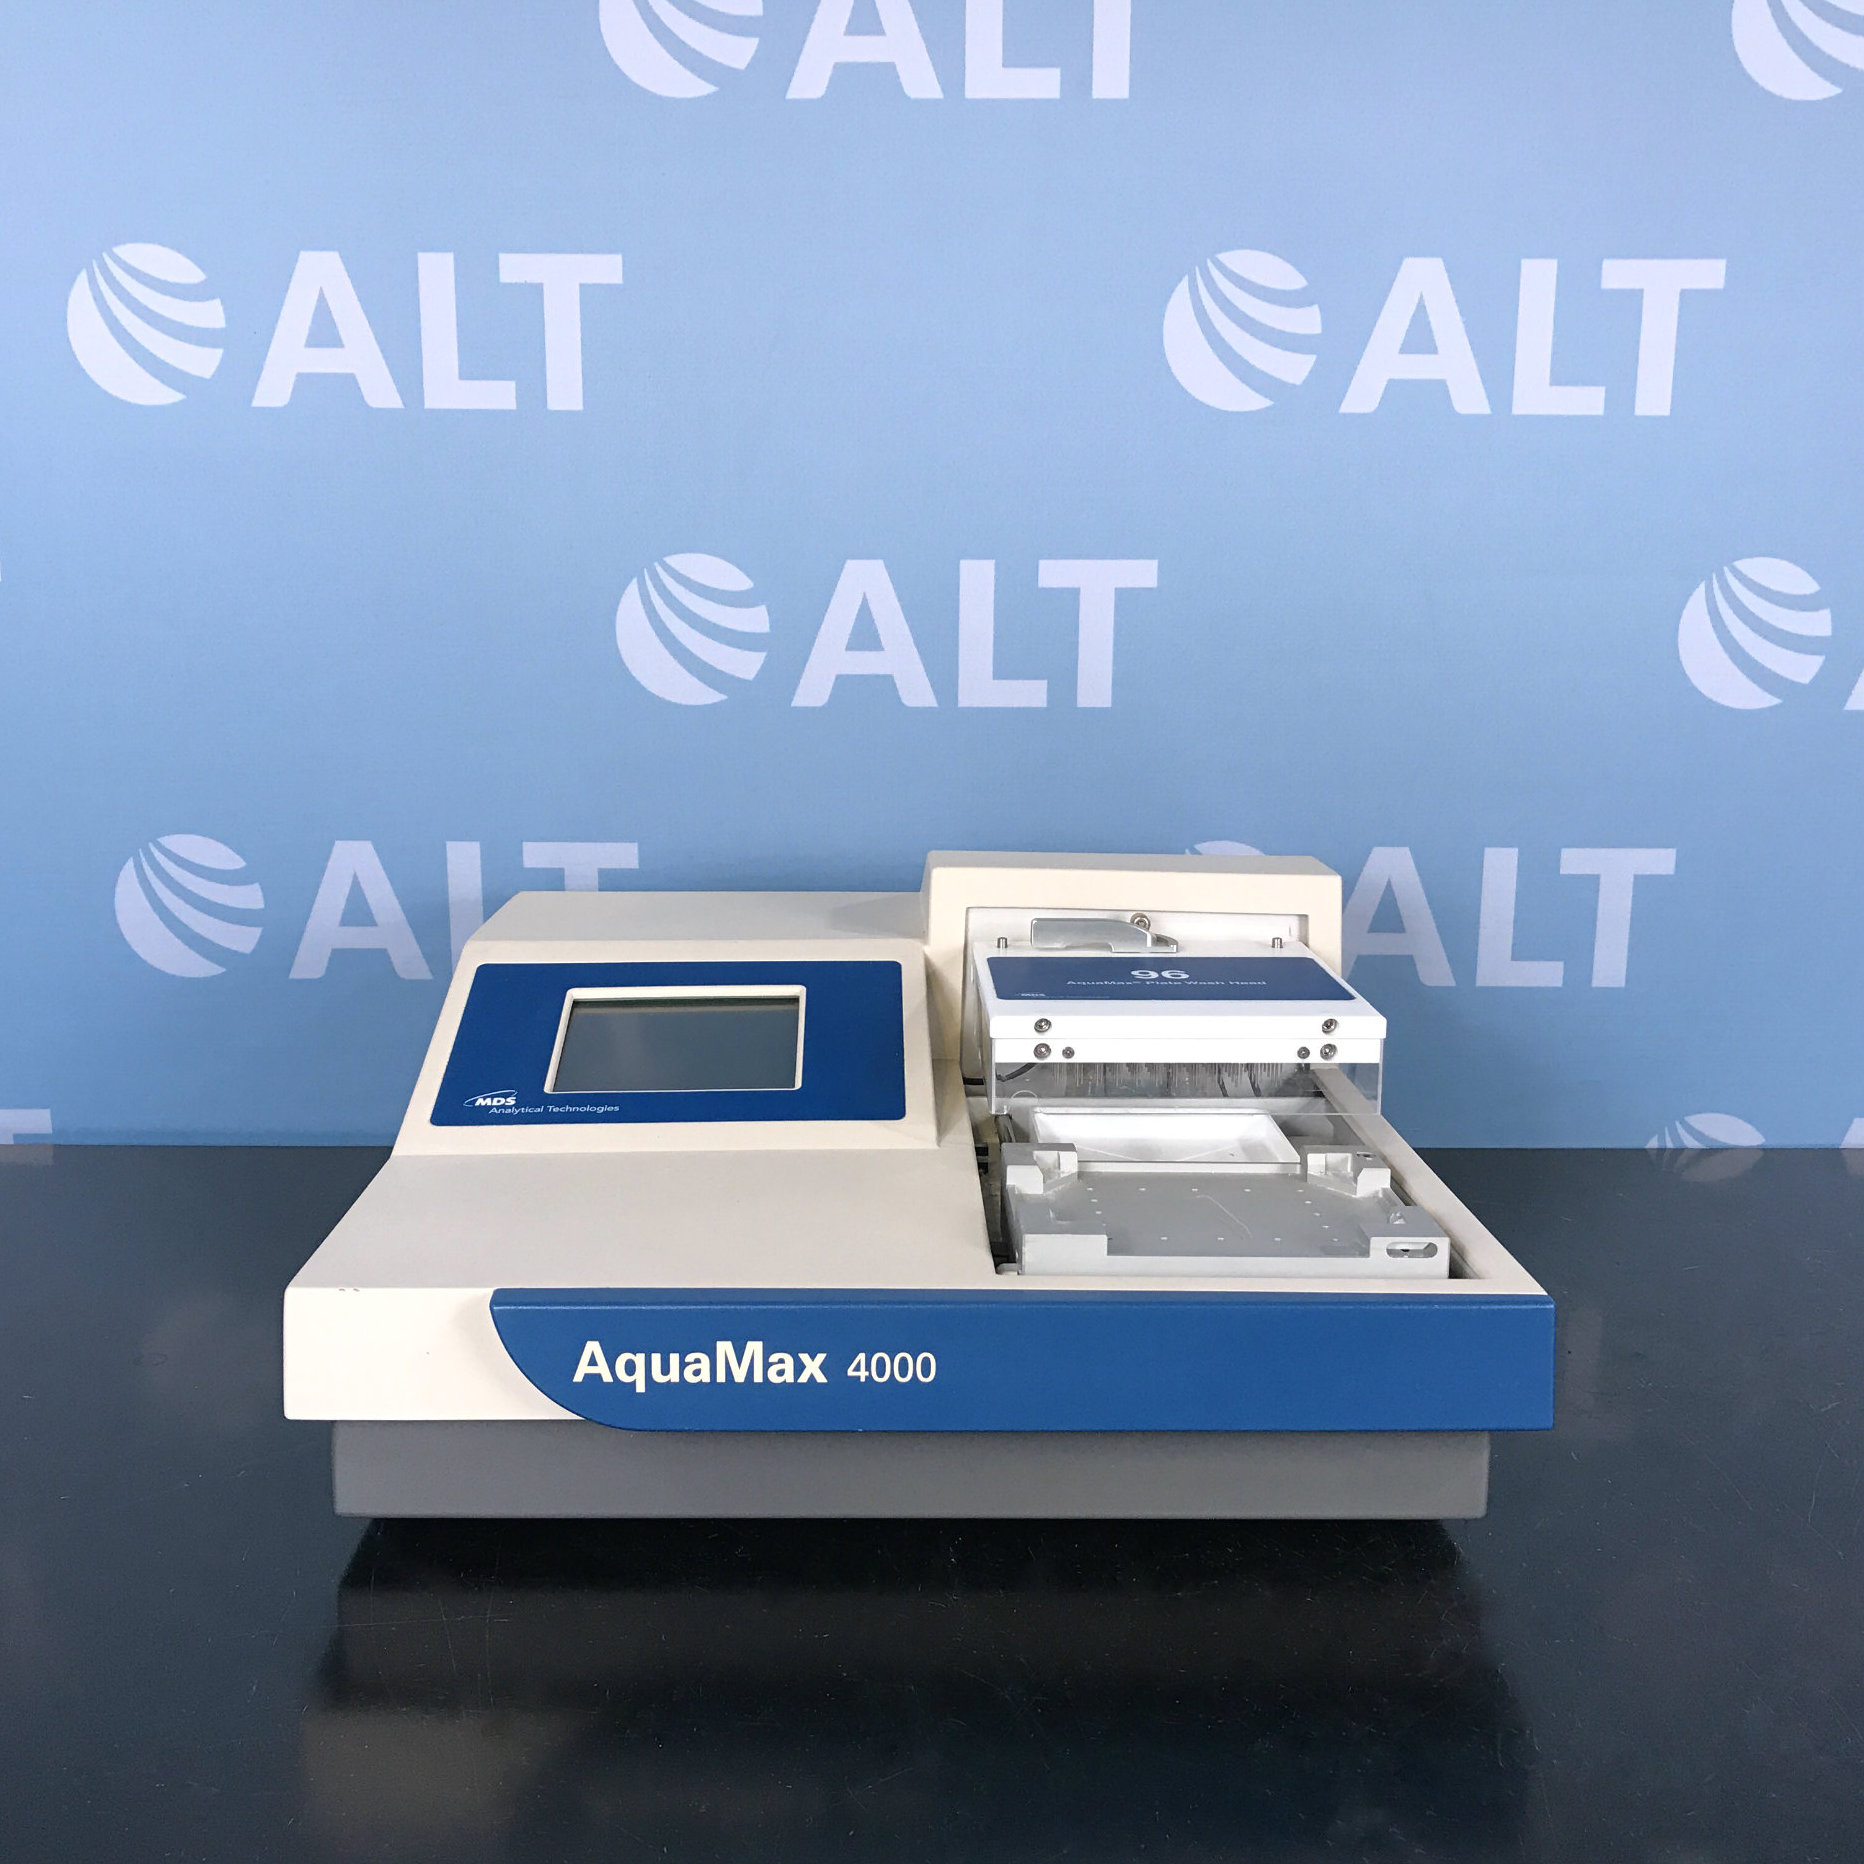 MDS Analytical Technologies AquaMax 4000 Microplate Washer with 96 Well Image